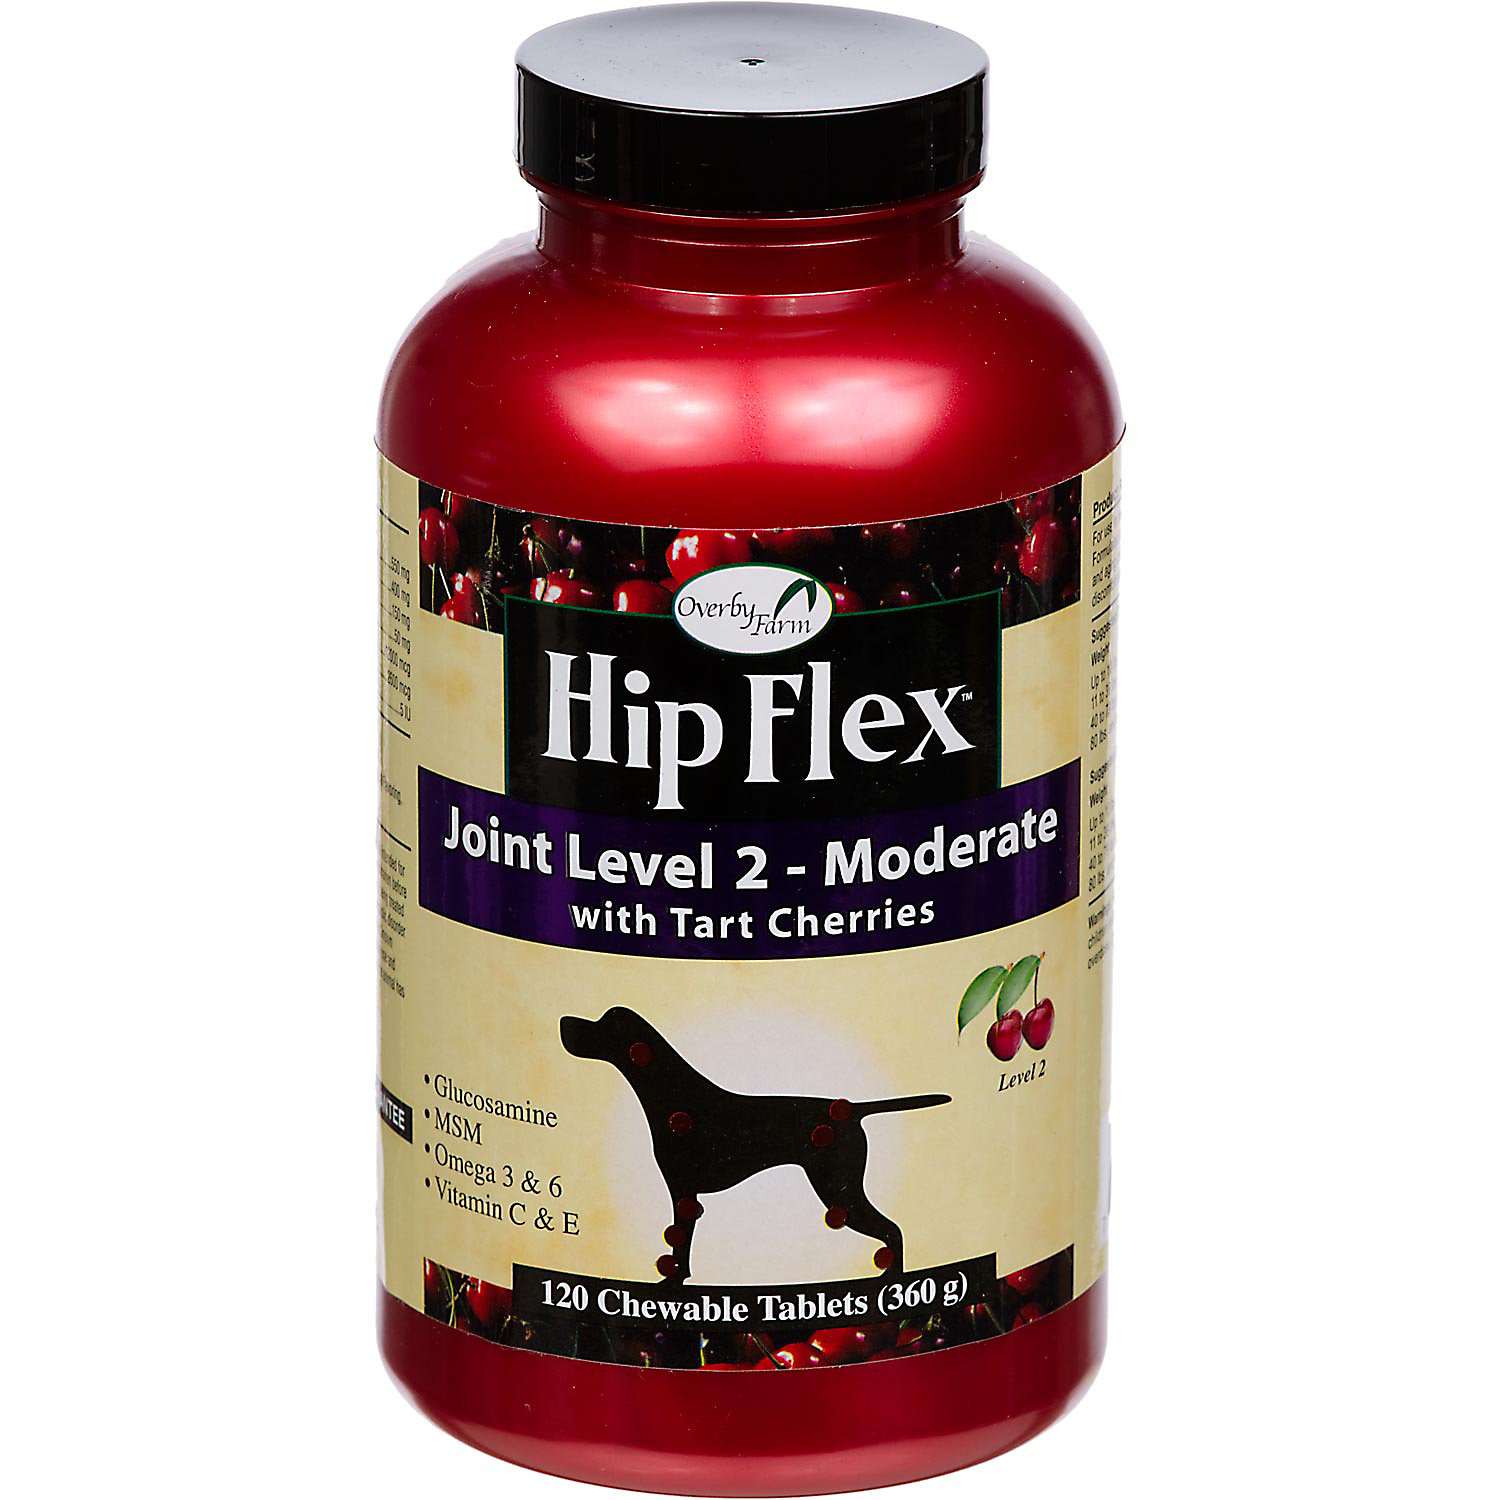 Overby Farm Hip Flex Joint Level 2 Moderate Dog Hip & Joint Supplement, 120 Tablets